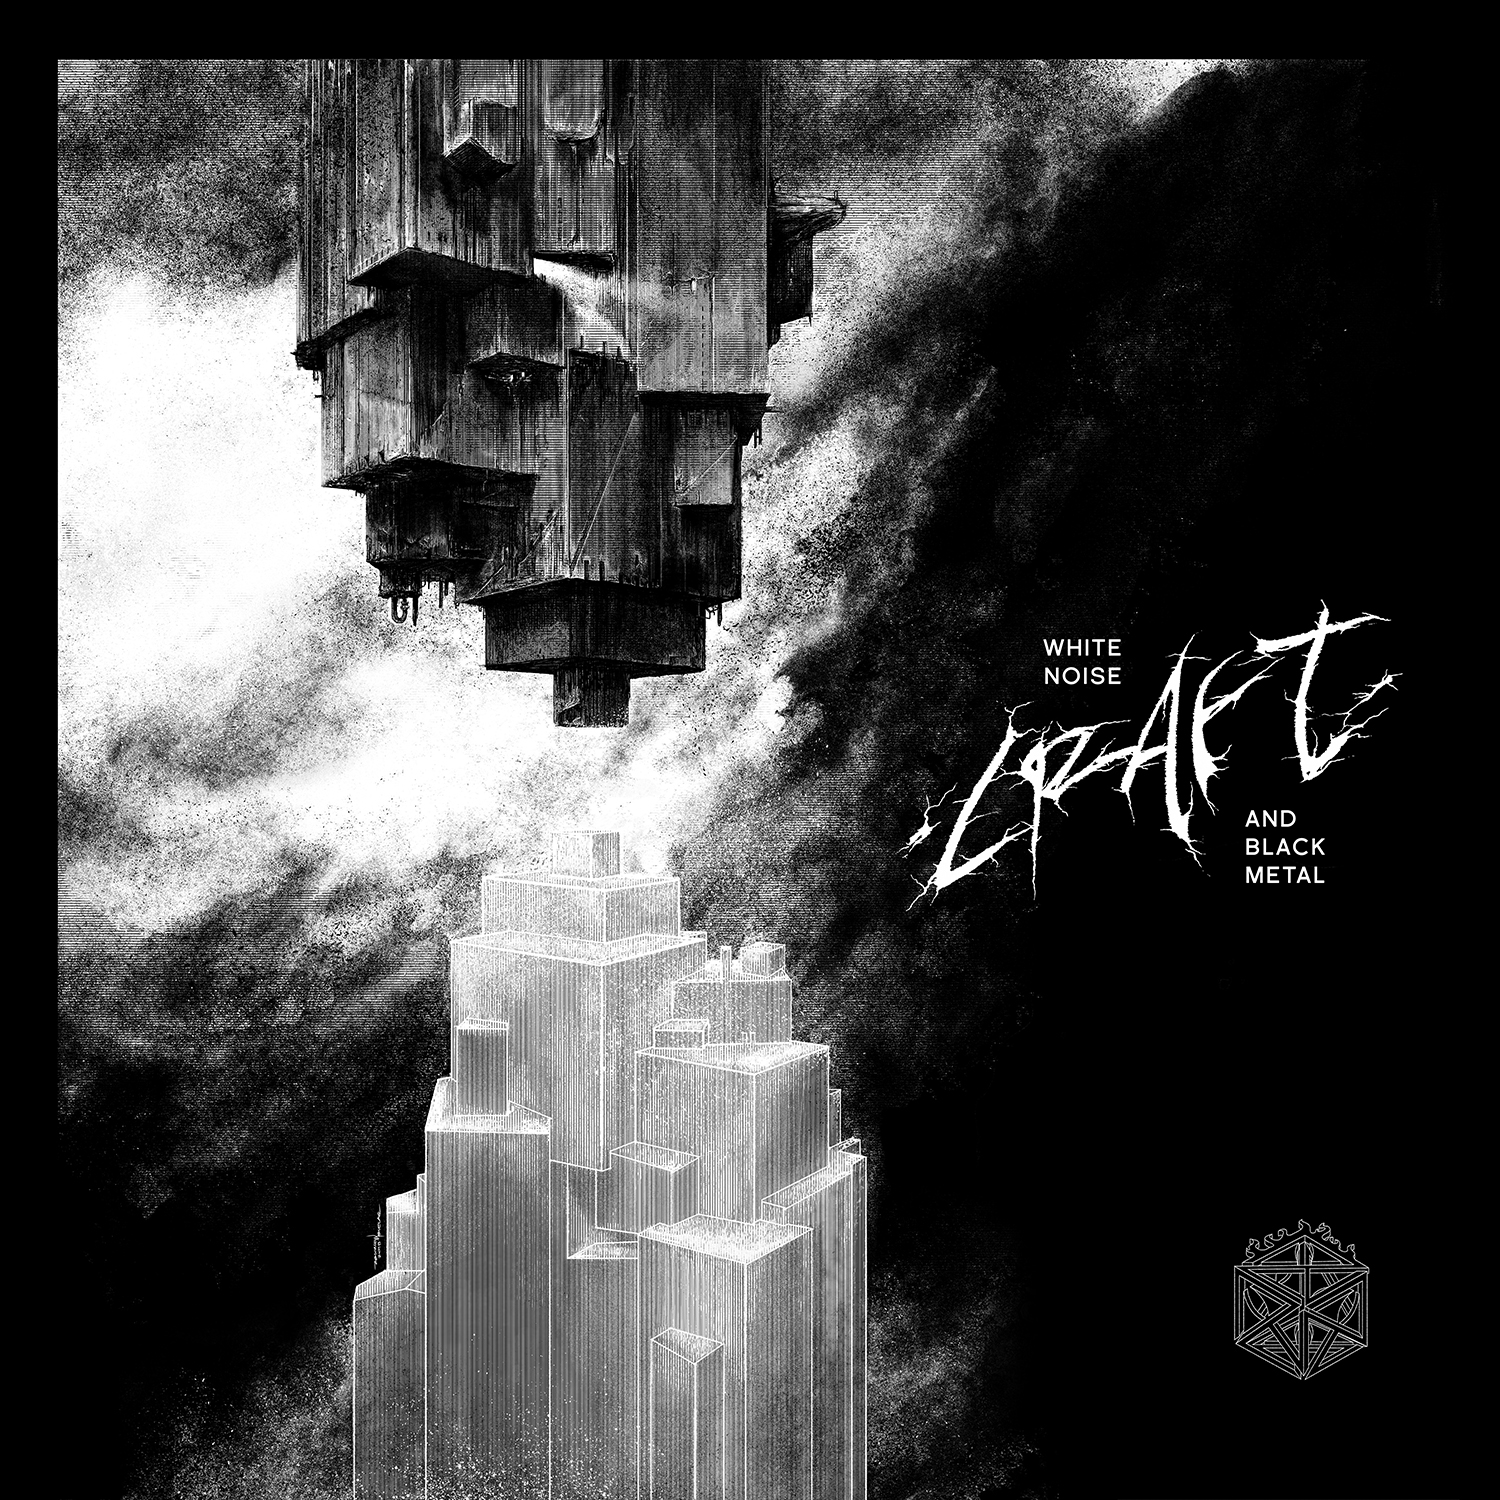 mortuusinsomnis777: Craft - White Noise and Black Metal